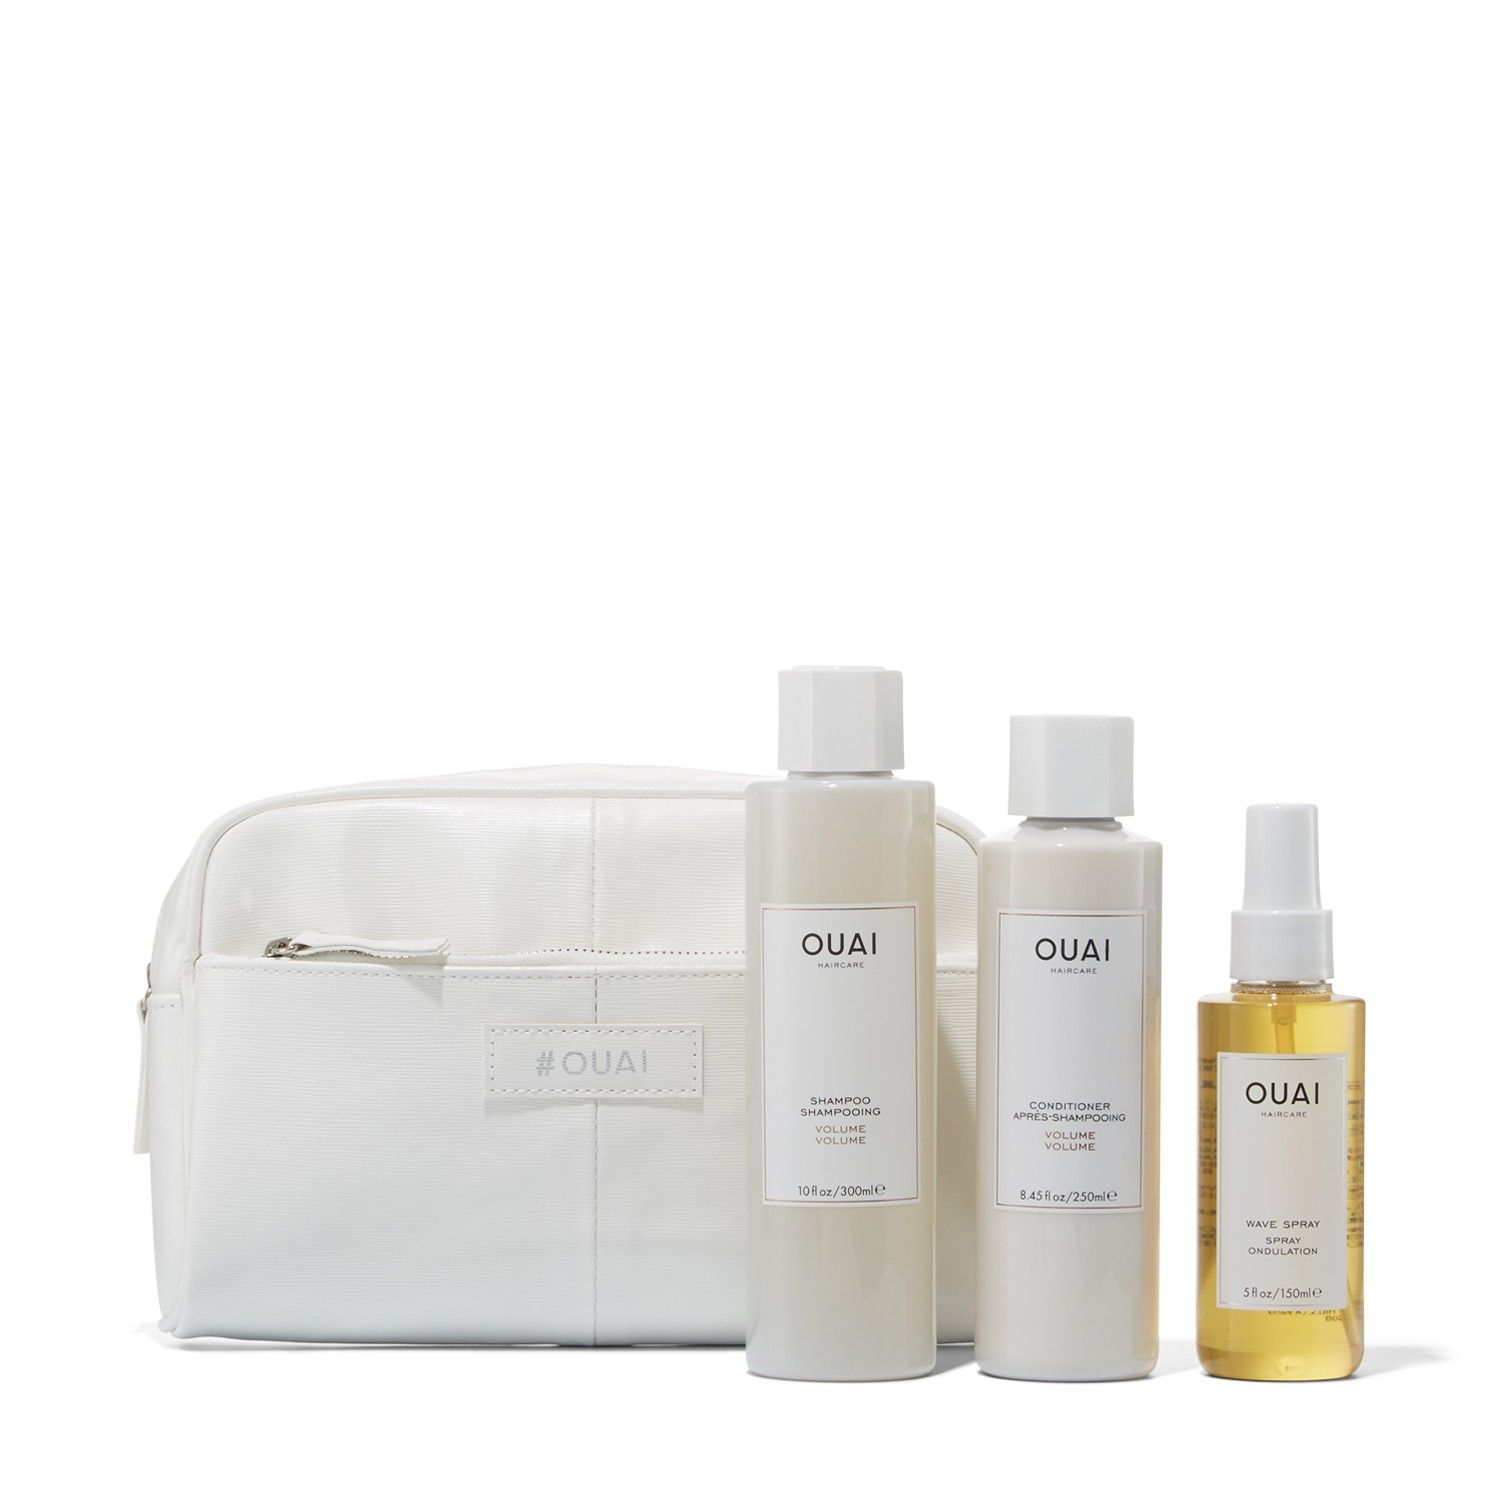 Ouai Exclusive Volume Set Birchbox Includes Volume Shampoo 10